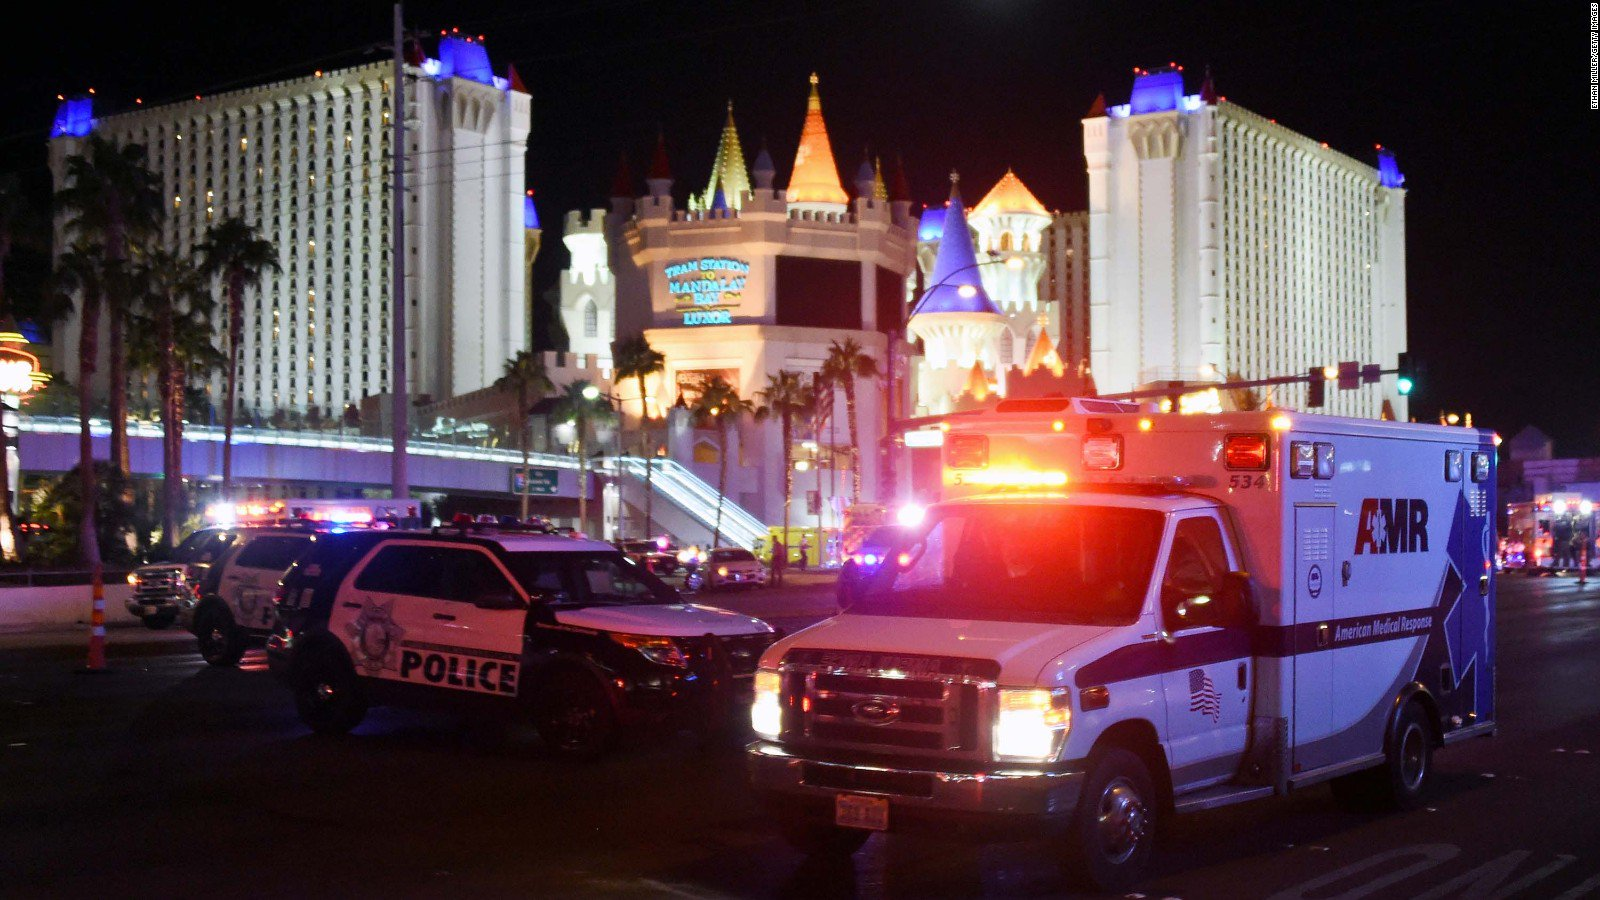 Police say they found more than 10 rifles in the Las Vegas gunman's hotel room https://t.co/5zsObmrOgn https://t.co/aWRyrHVqsb